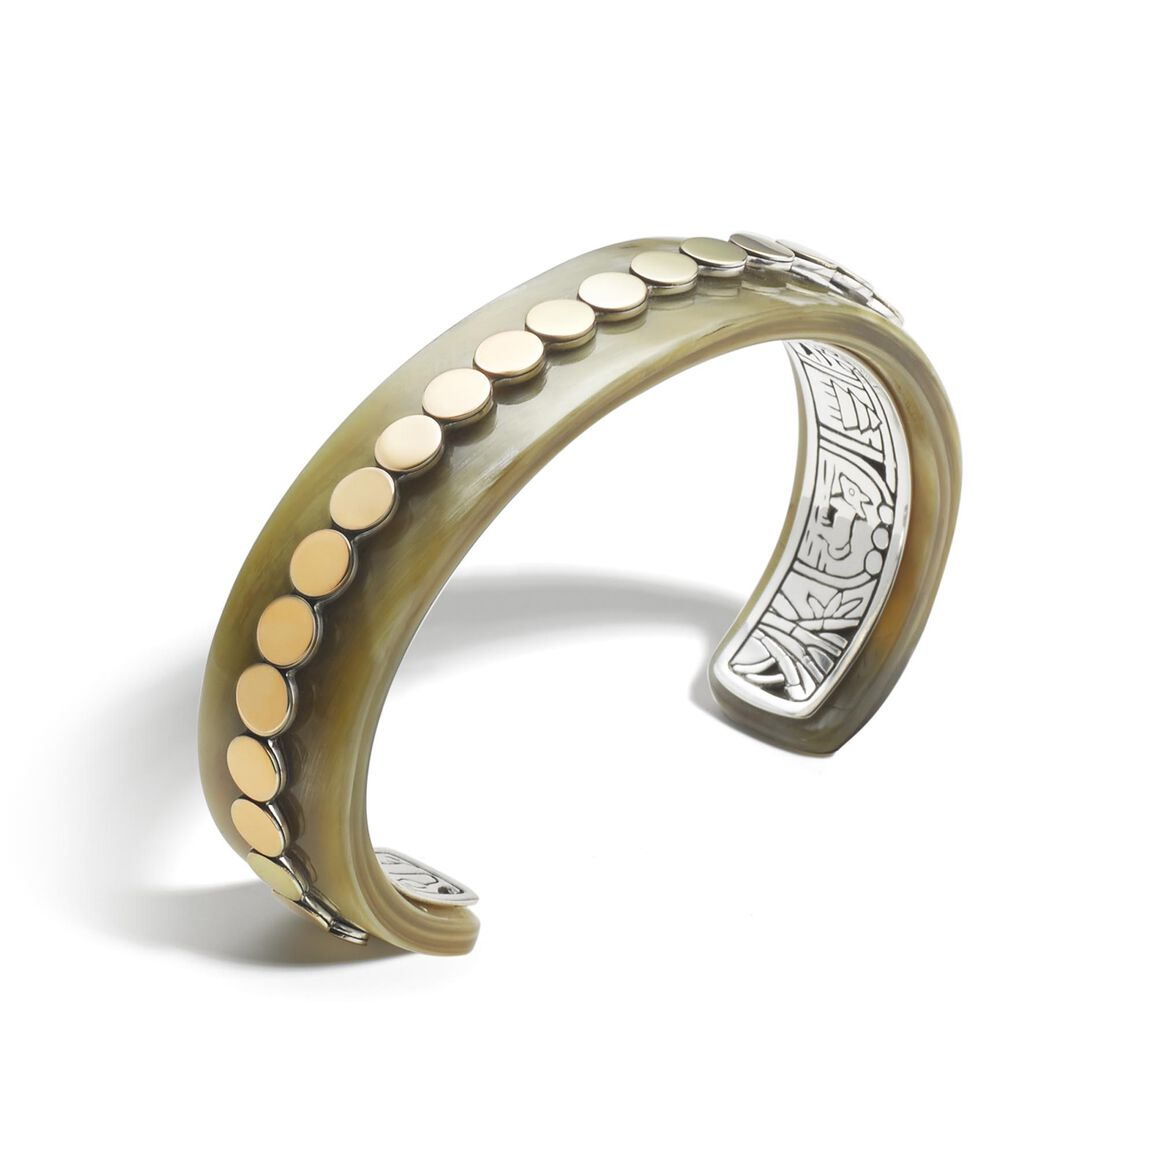 Dot 16MM Cuff in Silver, 18K Gold and Horn